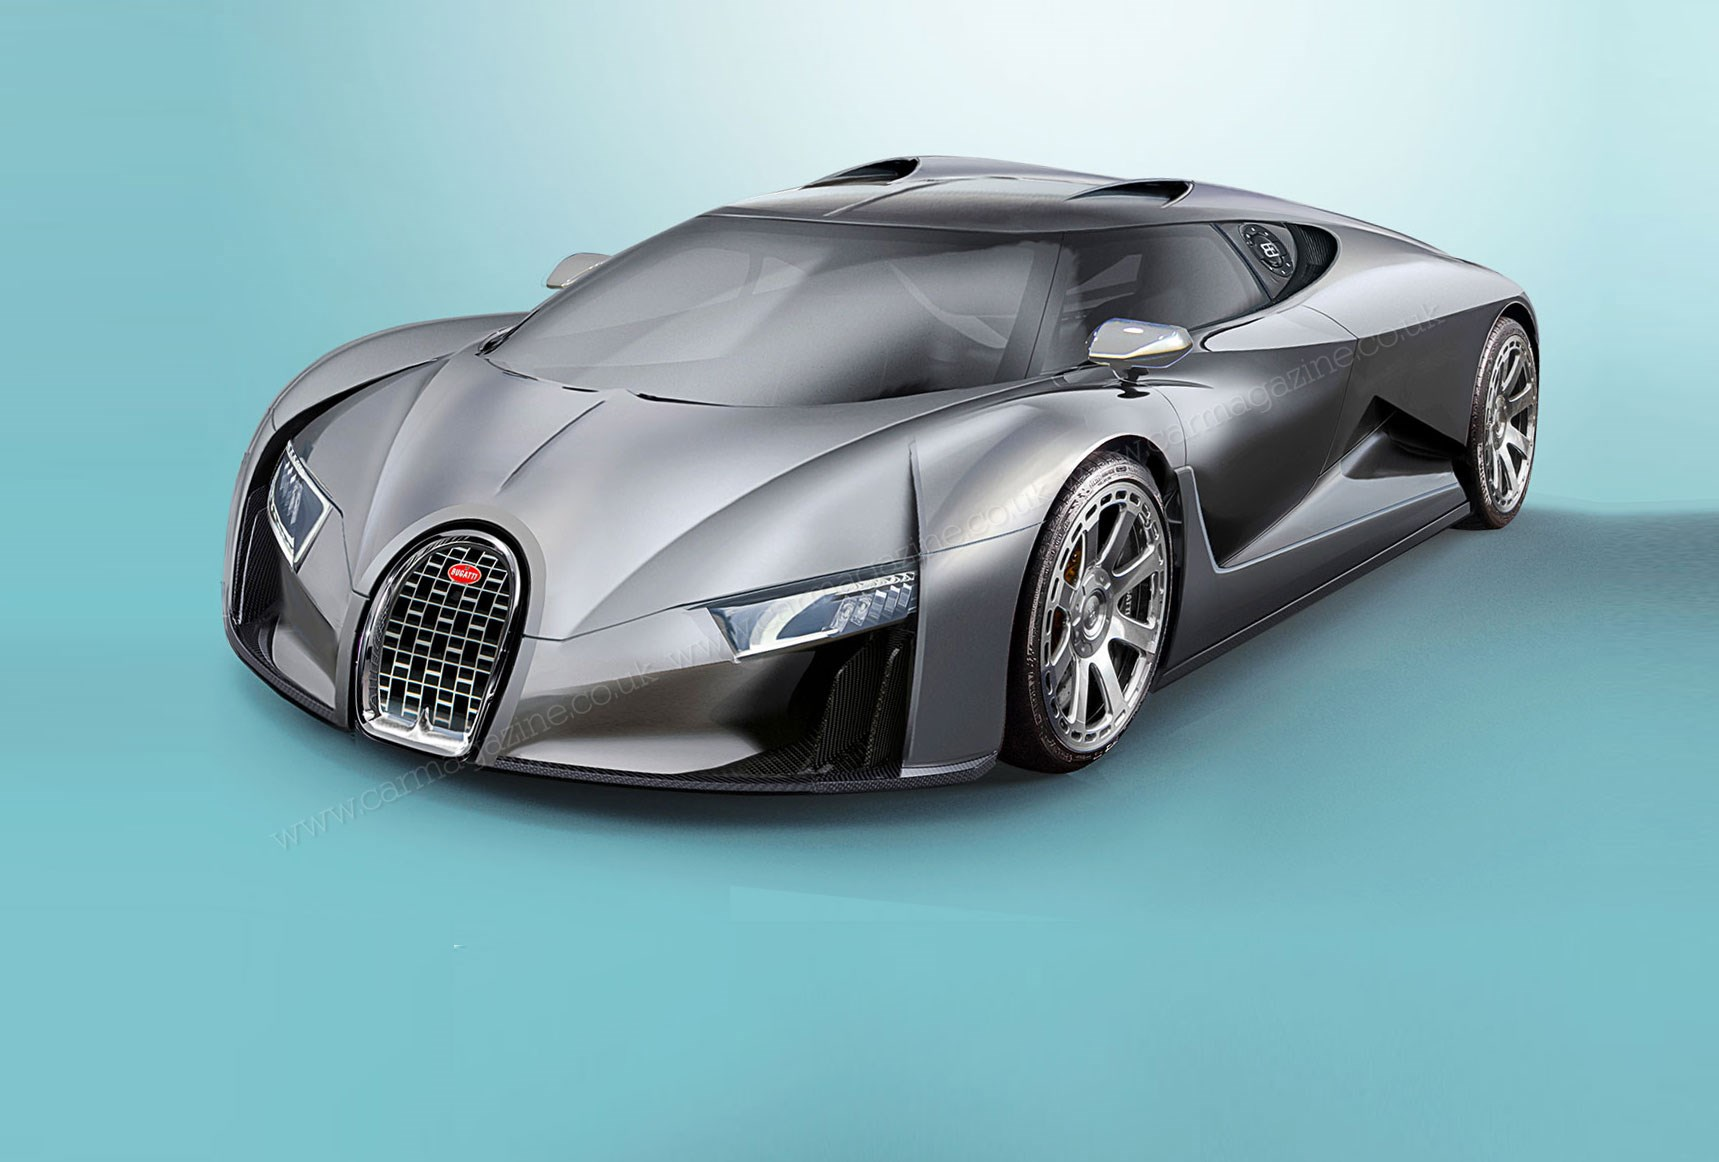 Bugatti is go! New Chiron name confirmed, here at Geneva 2016 | CAR ...